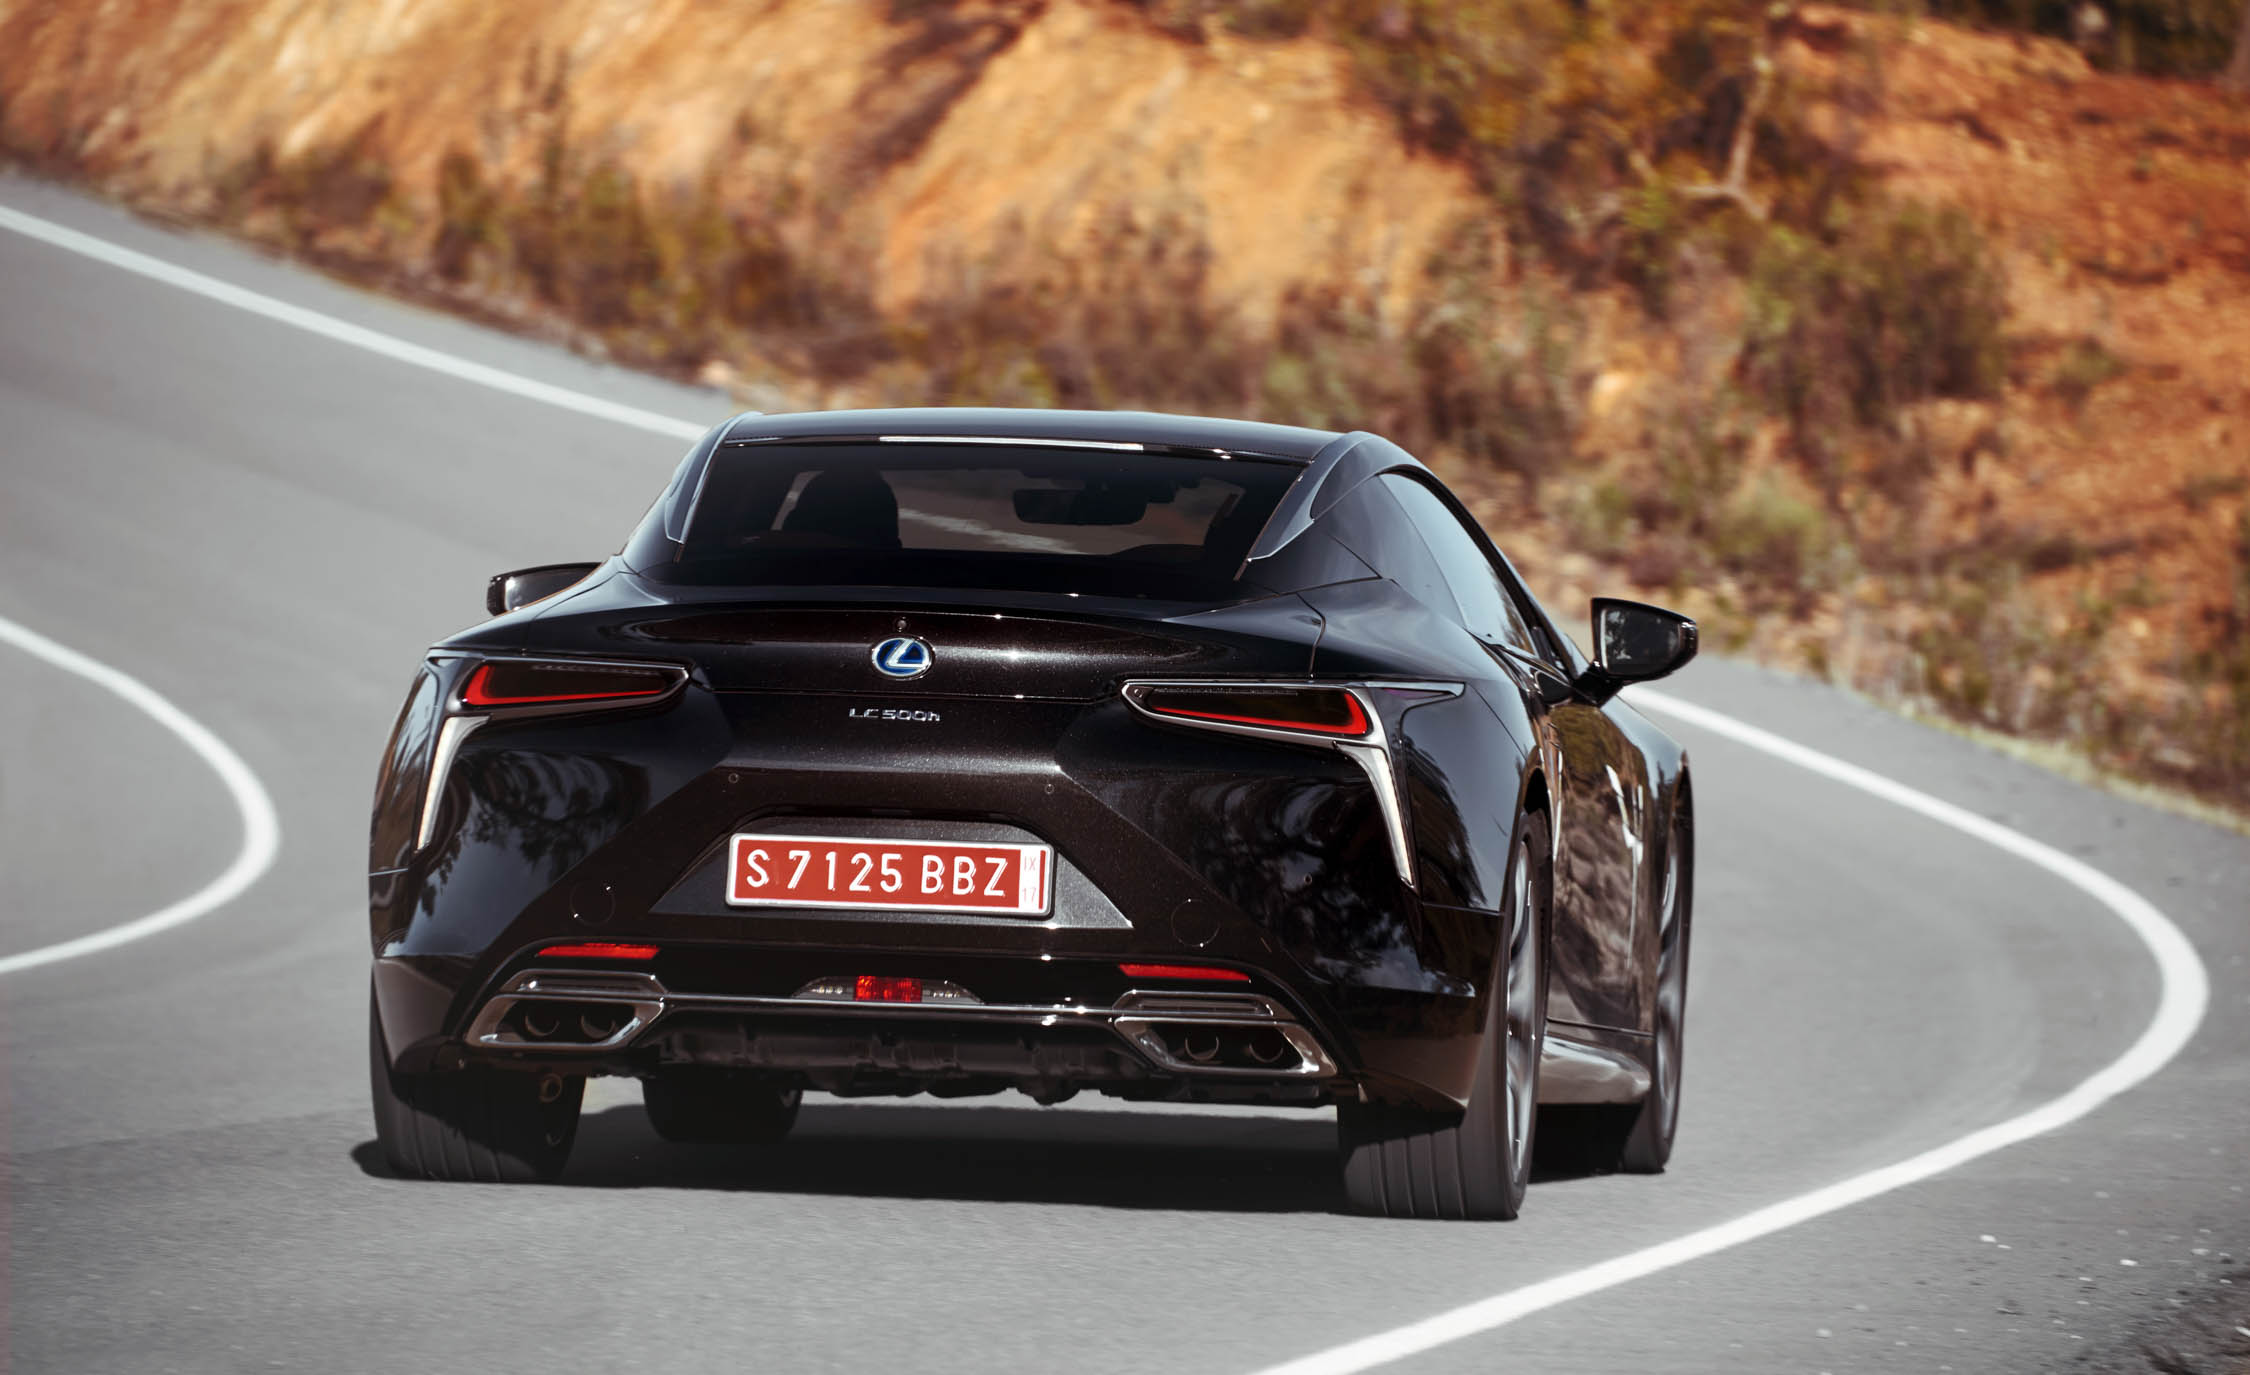 2018 Lexus Lc 500h Black Rear View (Photo 49 of 84)